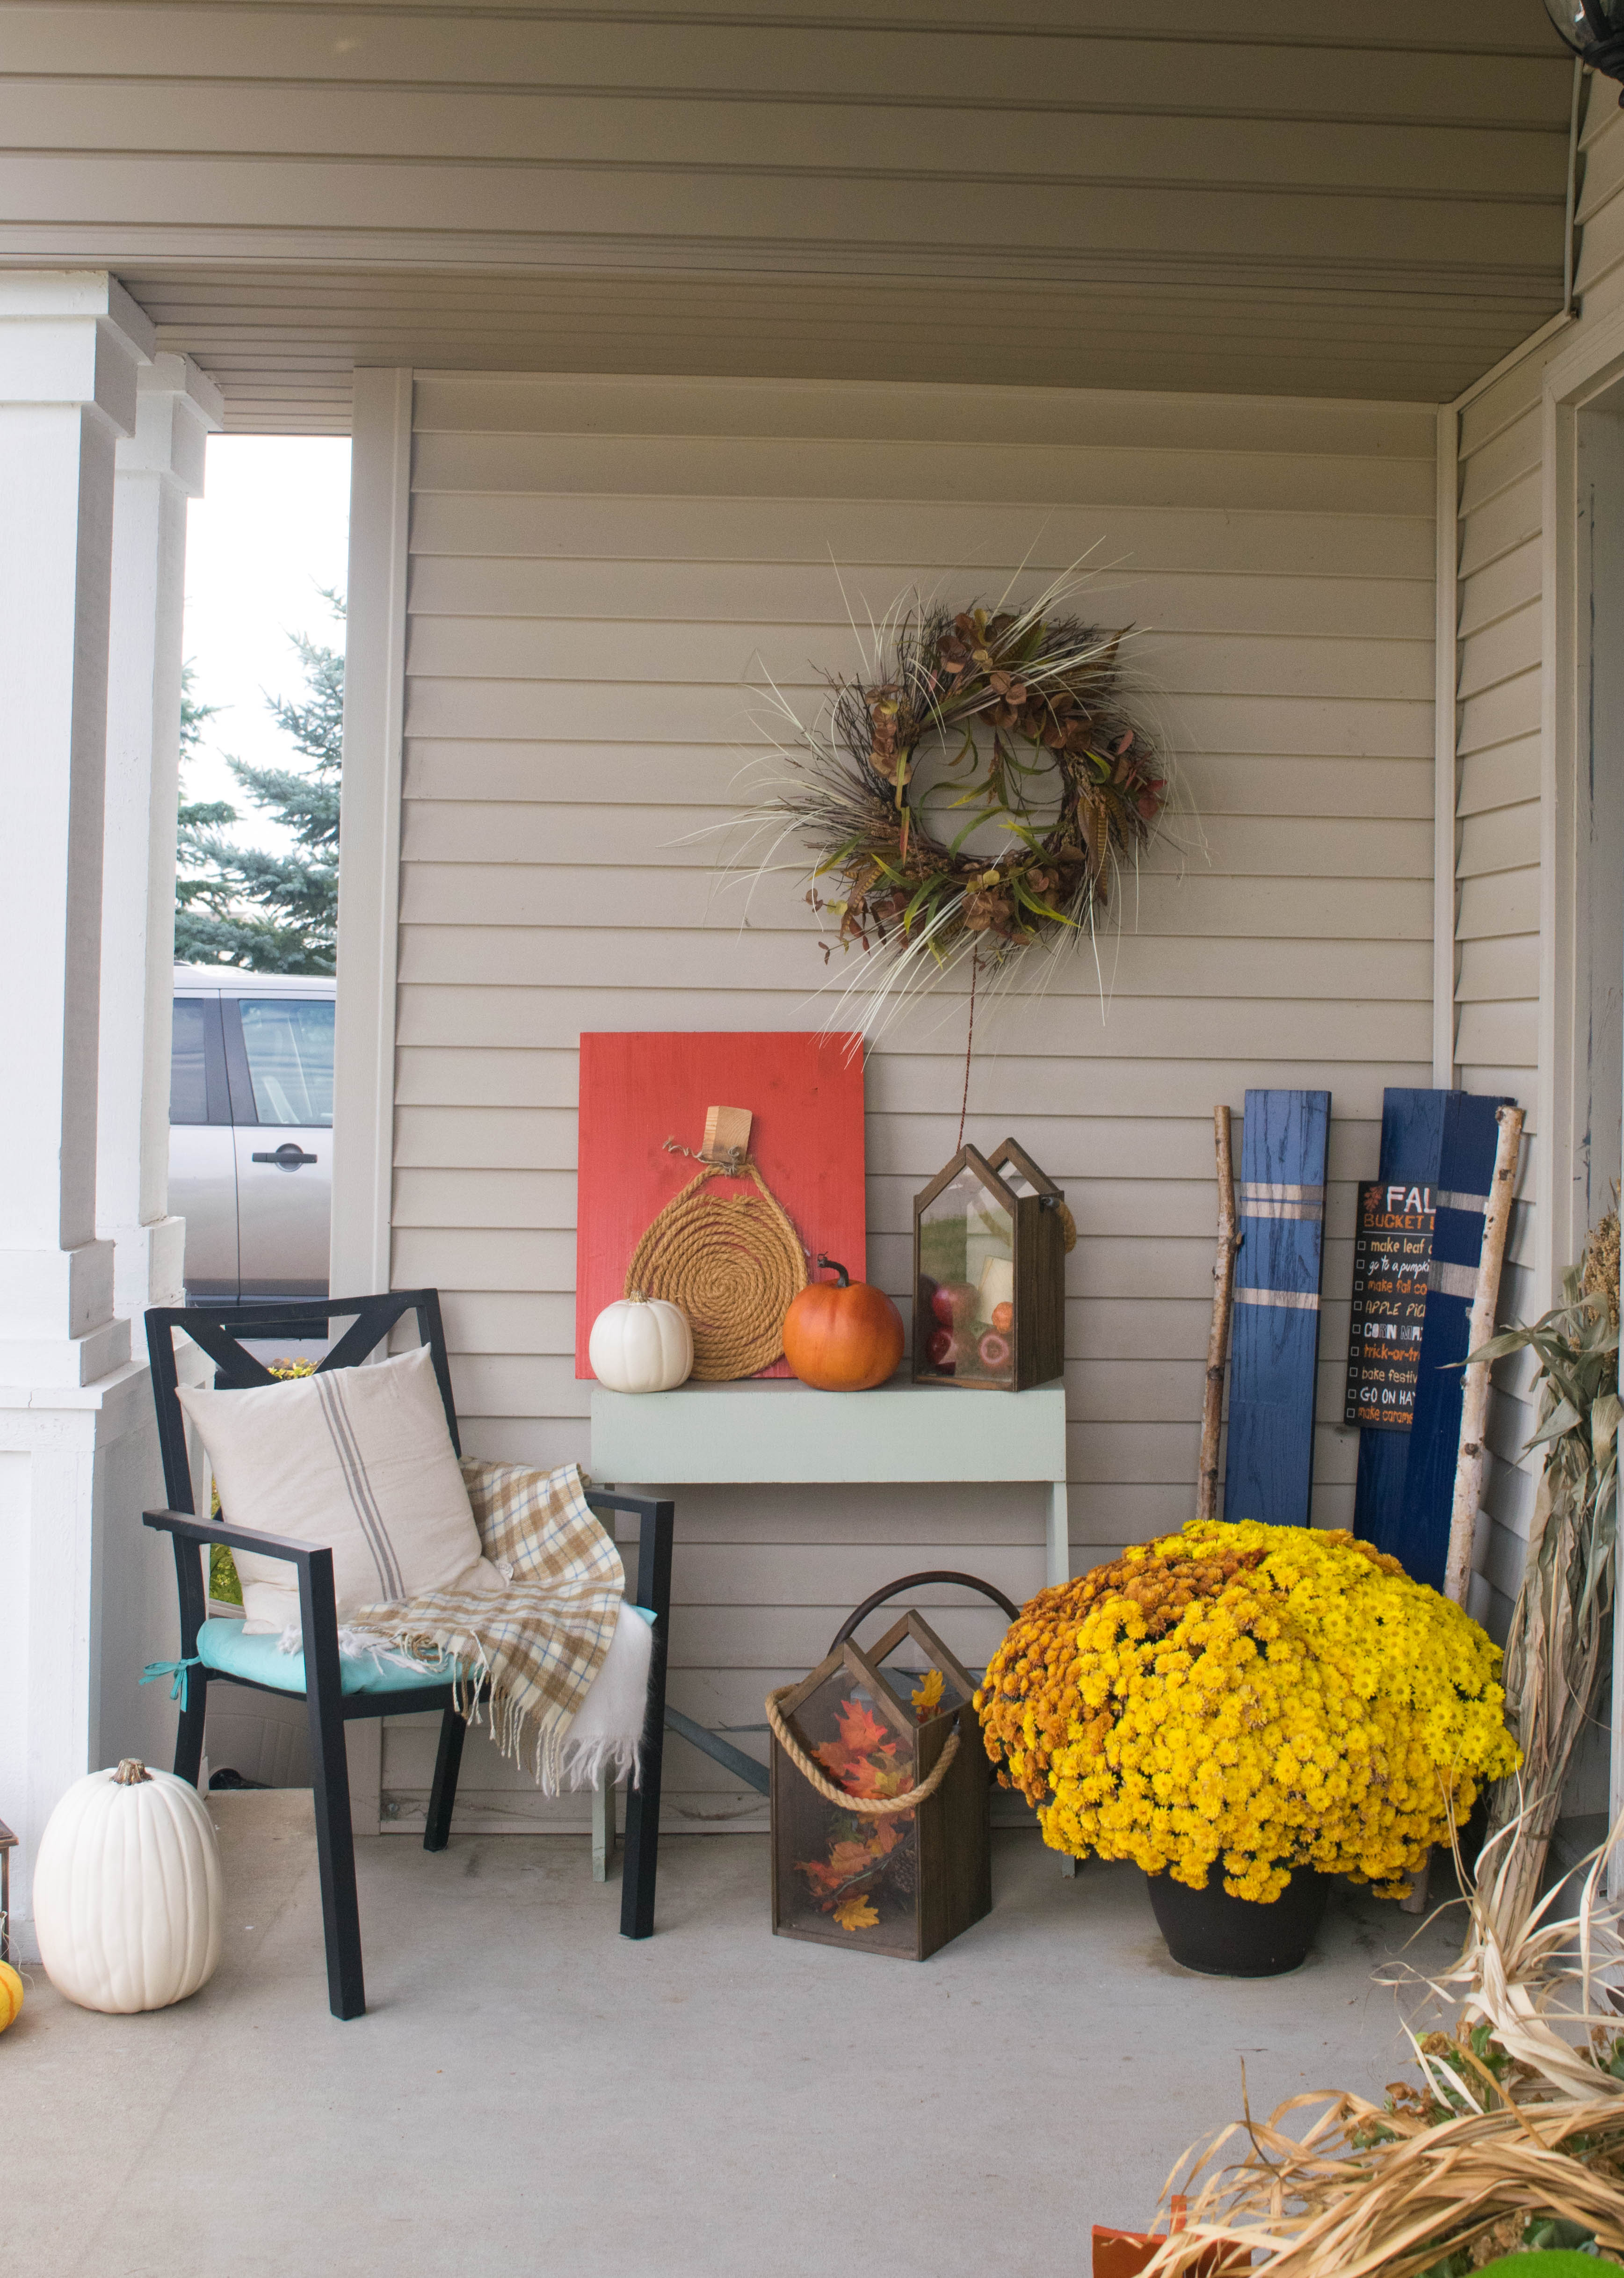 Noble Rustic Decor Our House Now A Home Rustic Decor Diy House Rustic Decor Rustic Decor Fall Front A Mix Diy Fall Front A Mix Home home decor Rustic Decor For Home